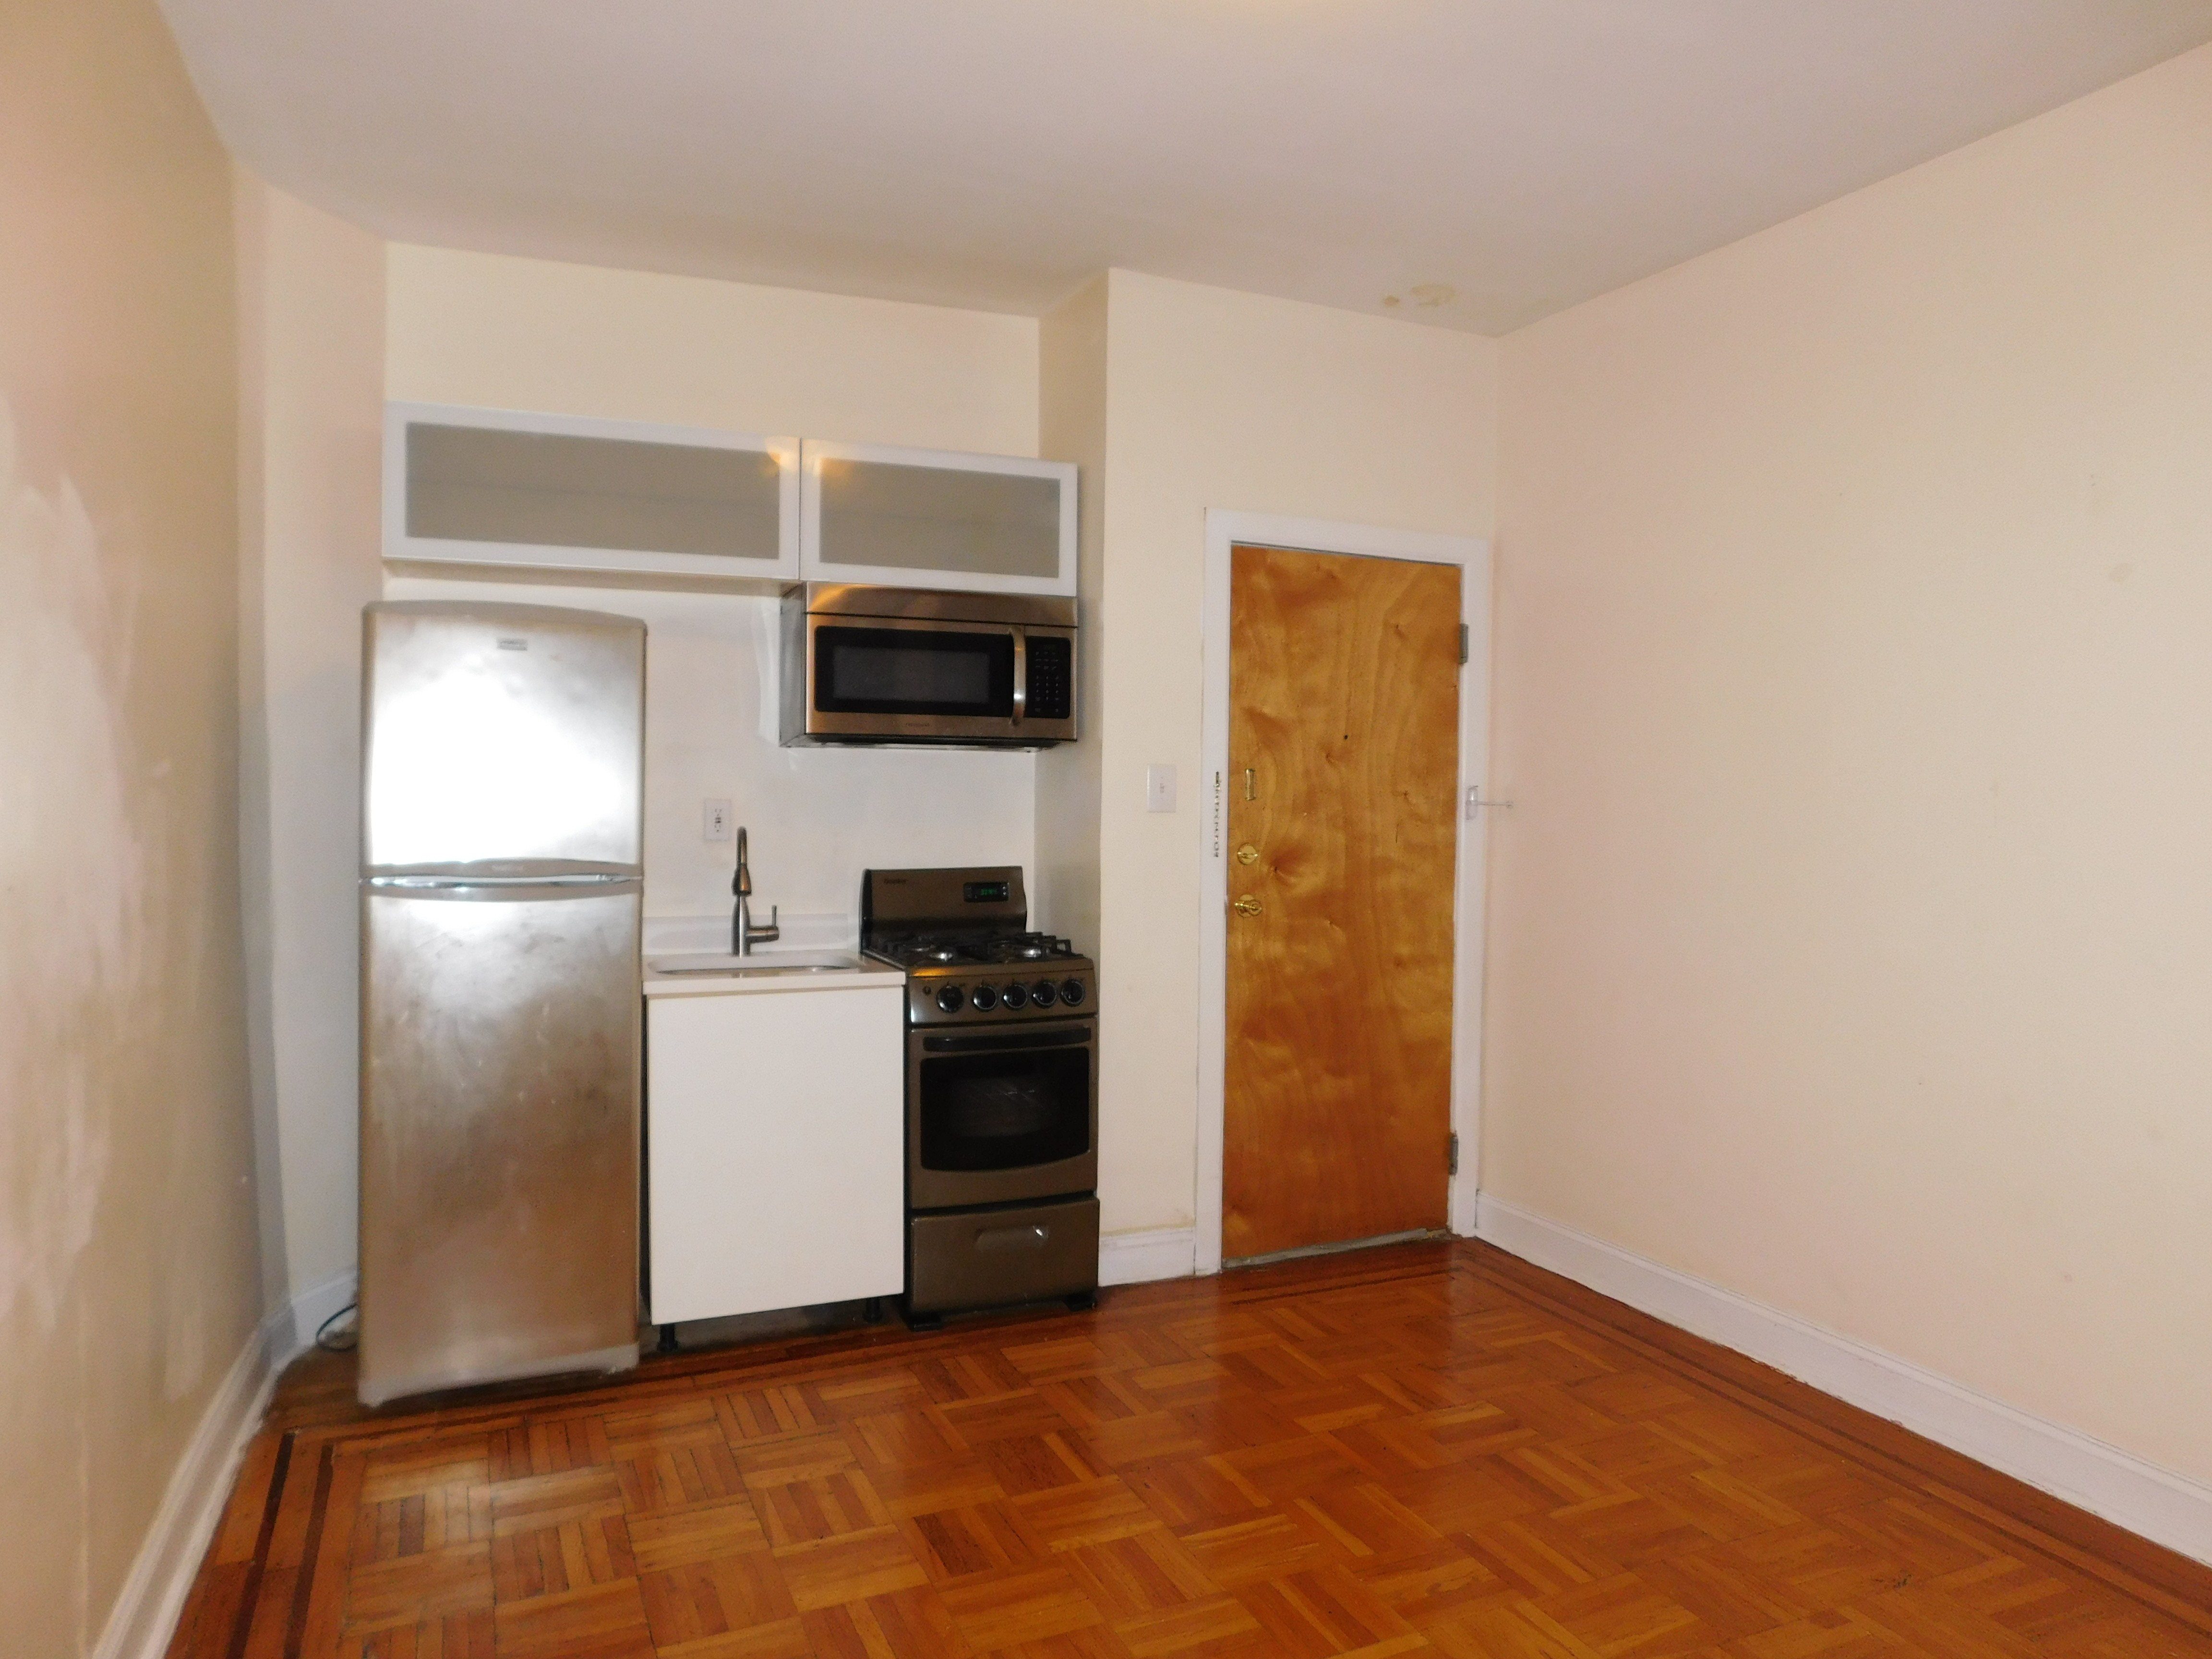 60 sip avenue 401 jersey city nj 07306 1 bedroom apartment for rent